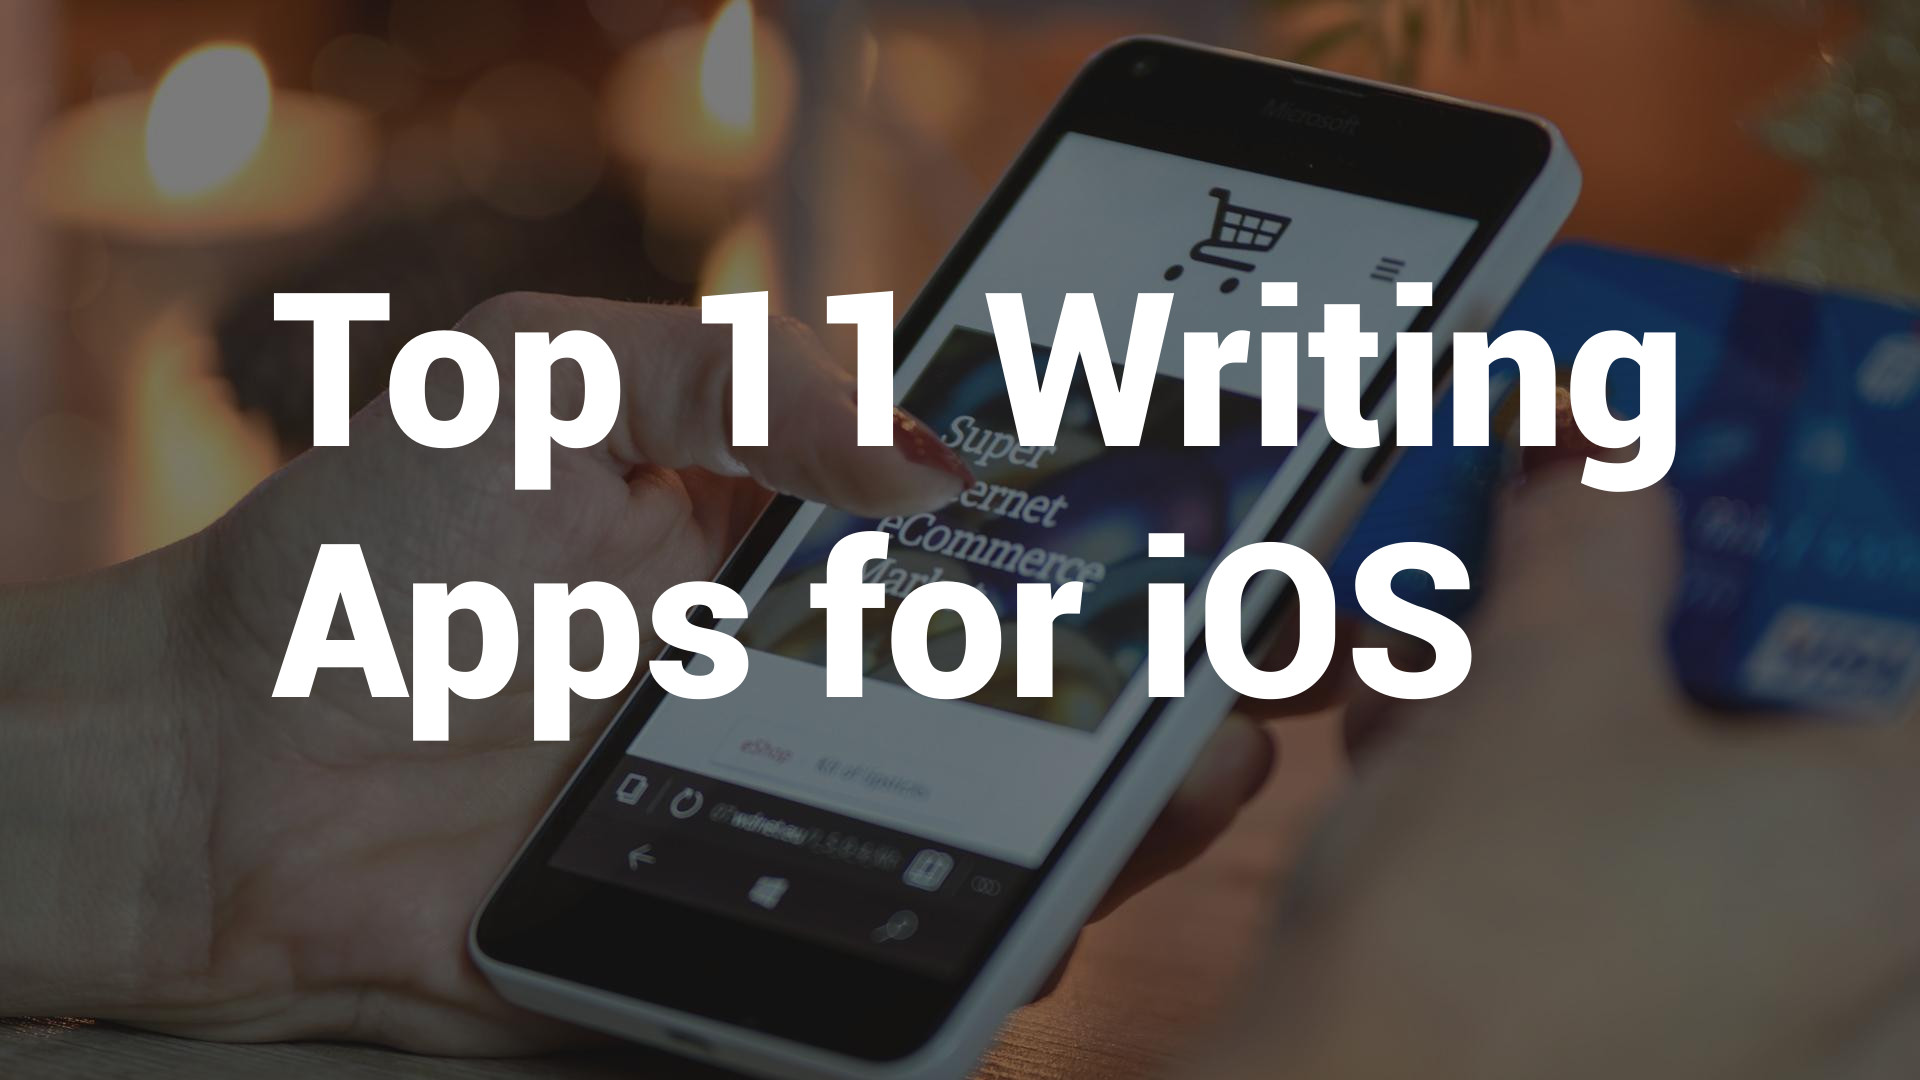 apps for writing on ipad A new round-up of favorite learning apps for literacy, reading and writing for toddlers, preschoolers, and elementary-age kids.